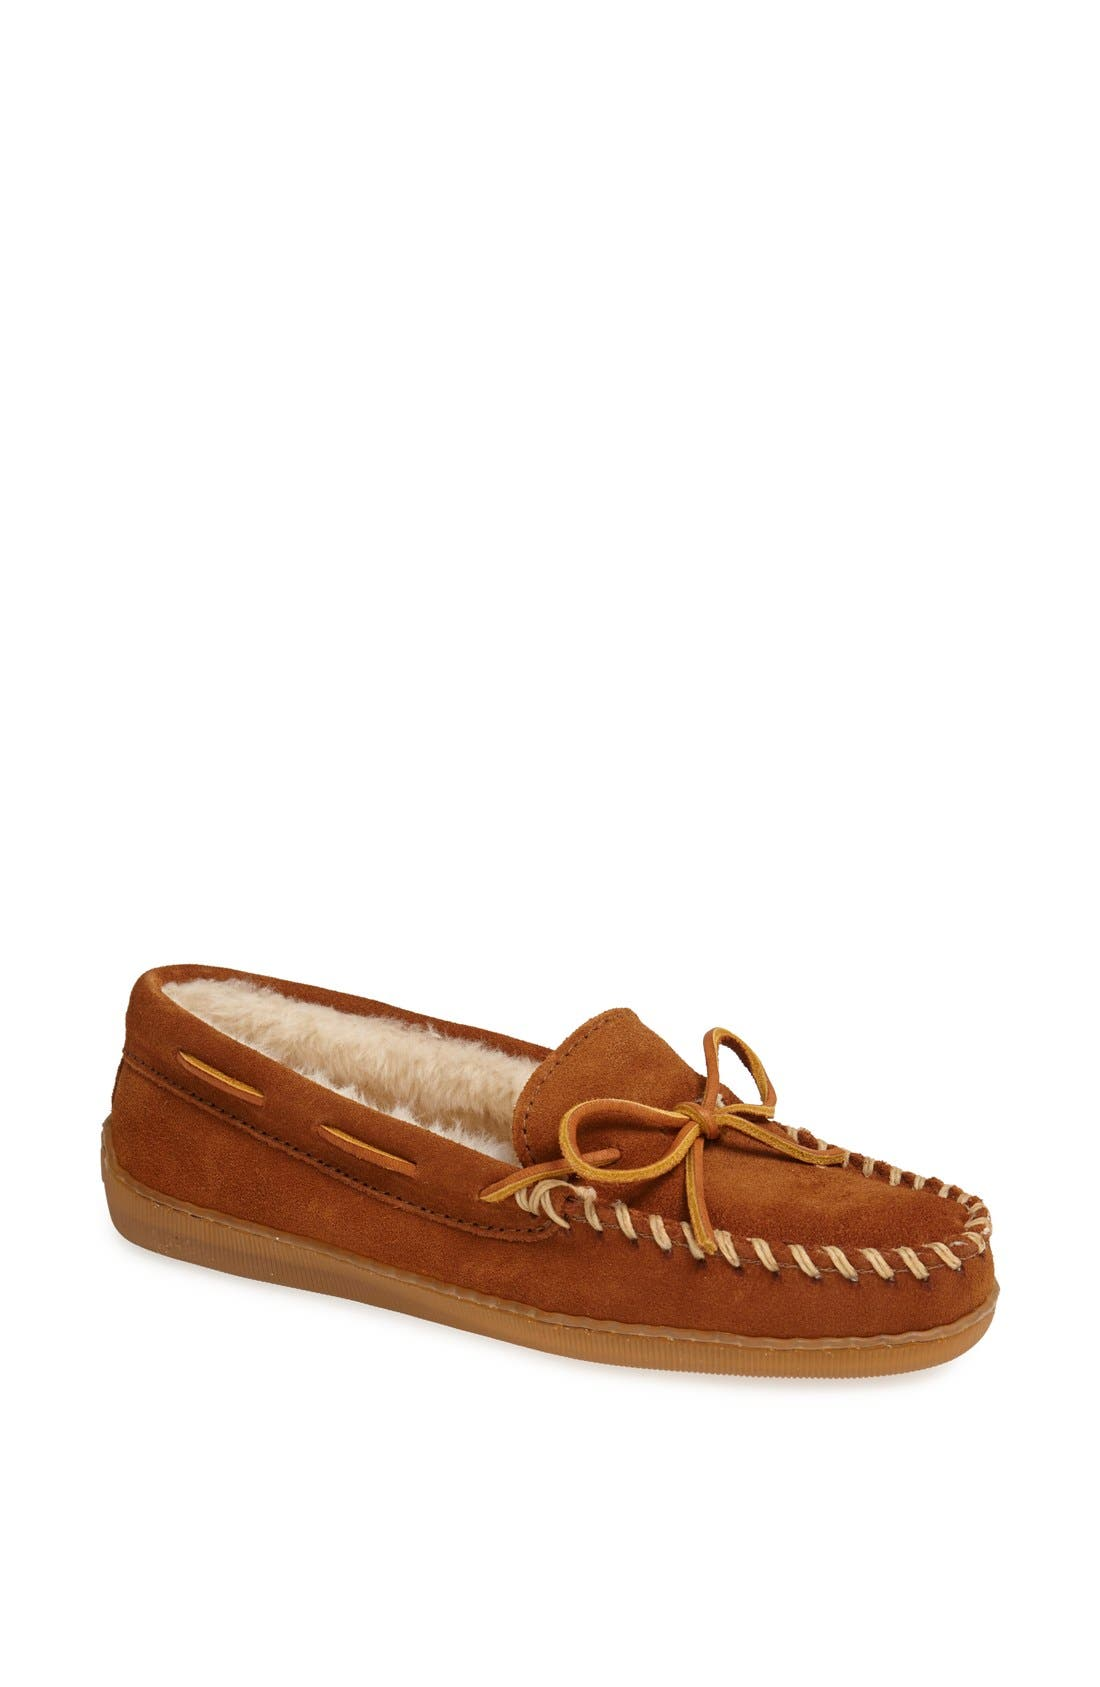 Main Image - Minnetonka Moccasin Slipper